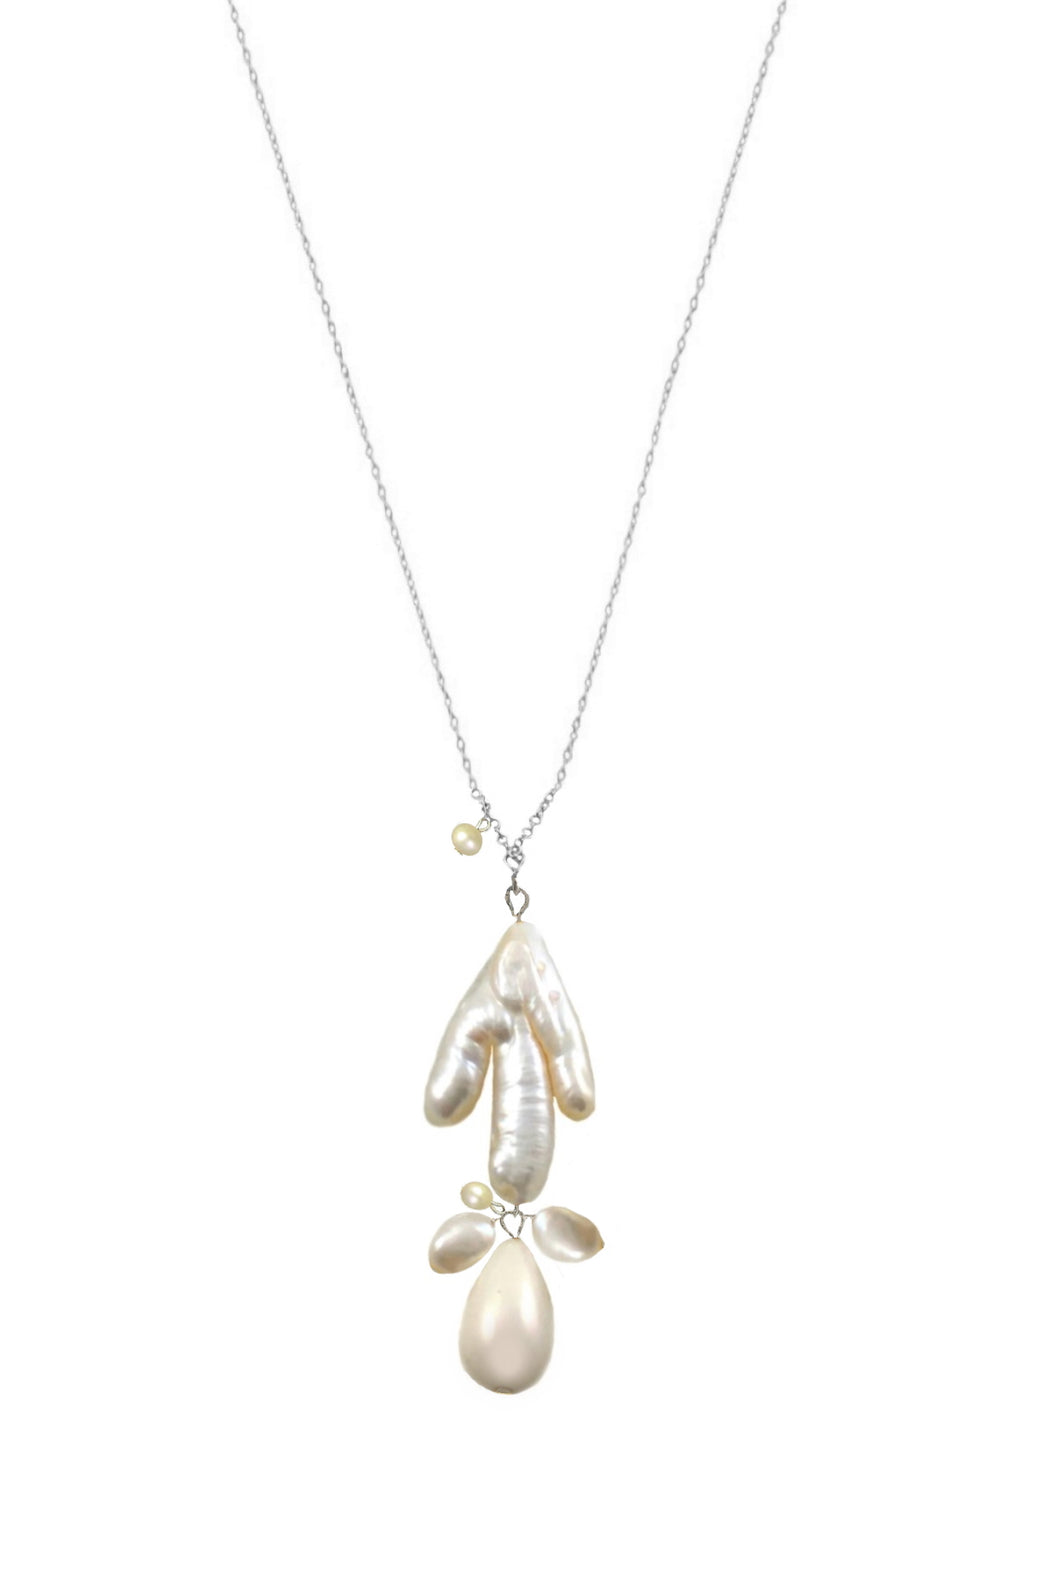 SALE - Pearls  Sofia  Necklaces in Gold and Silver